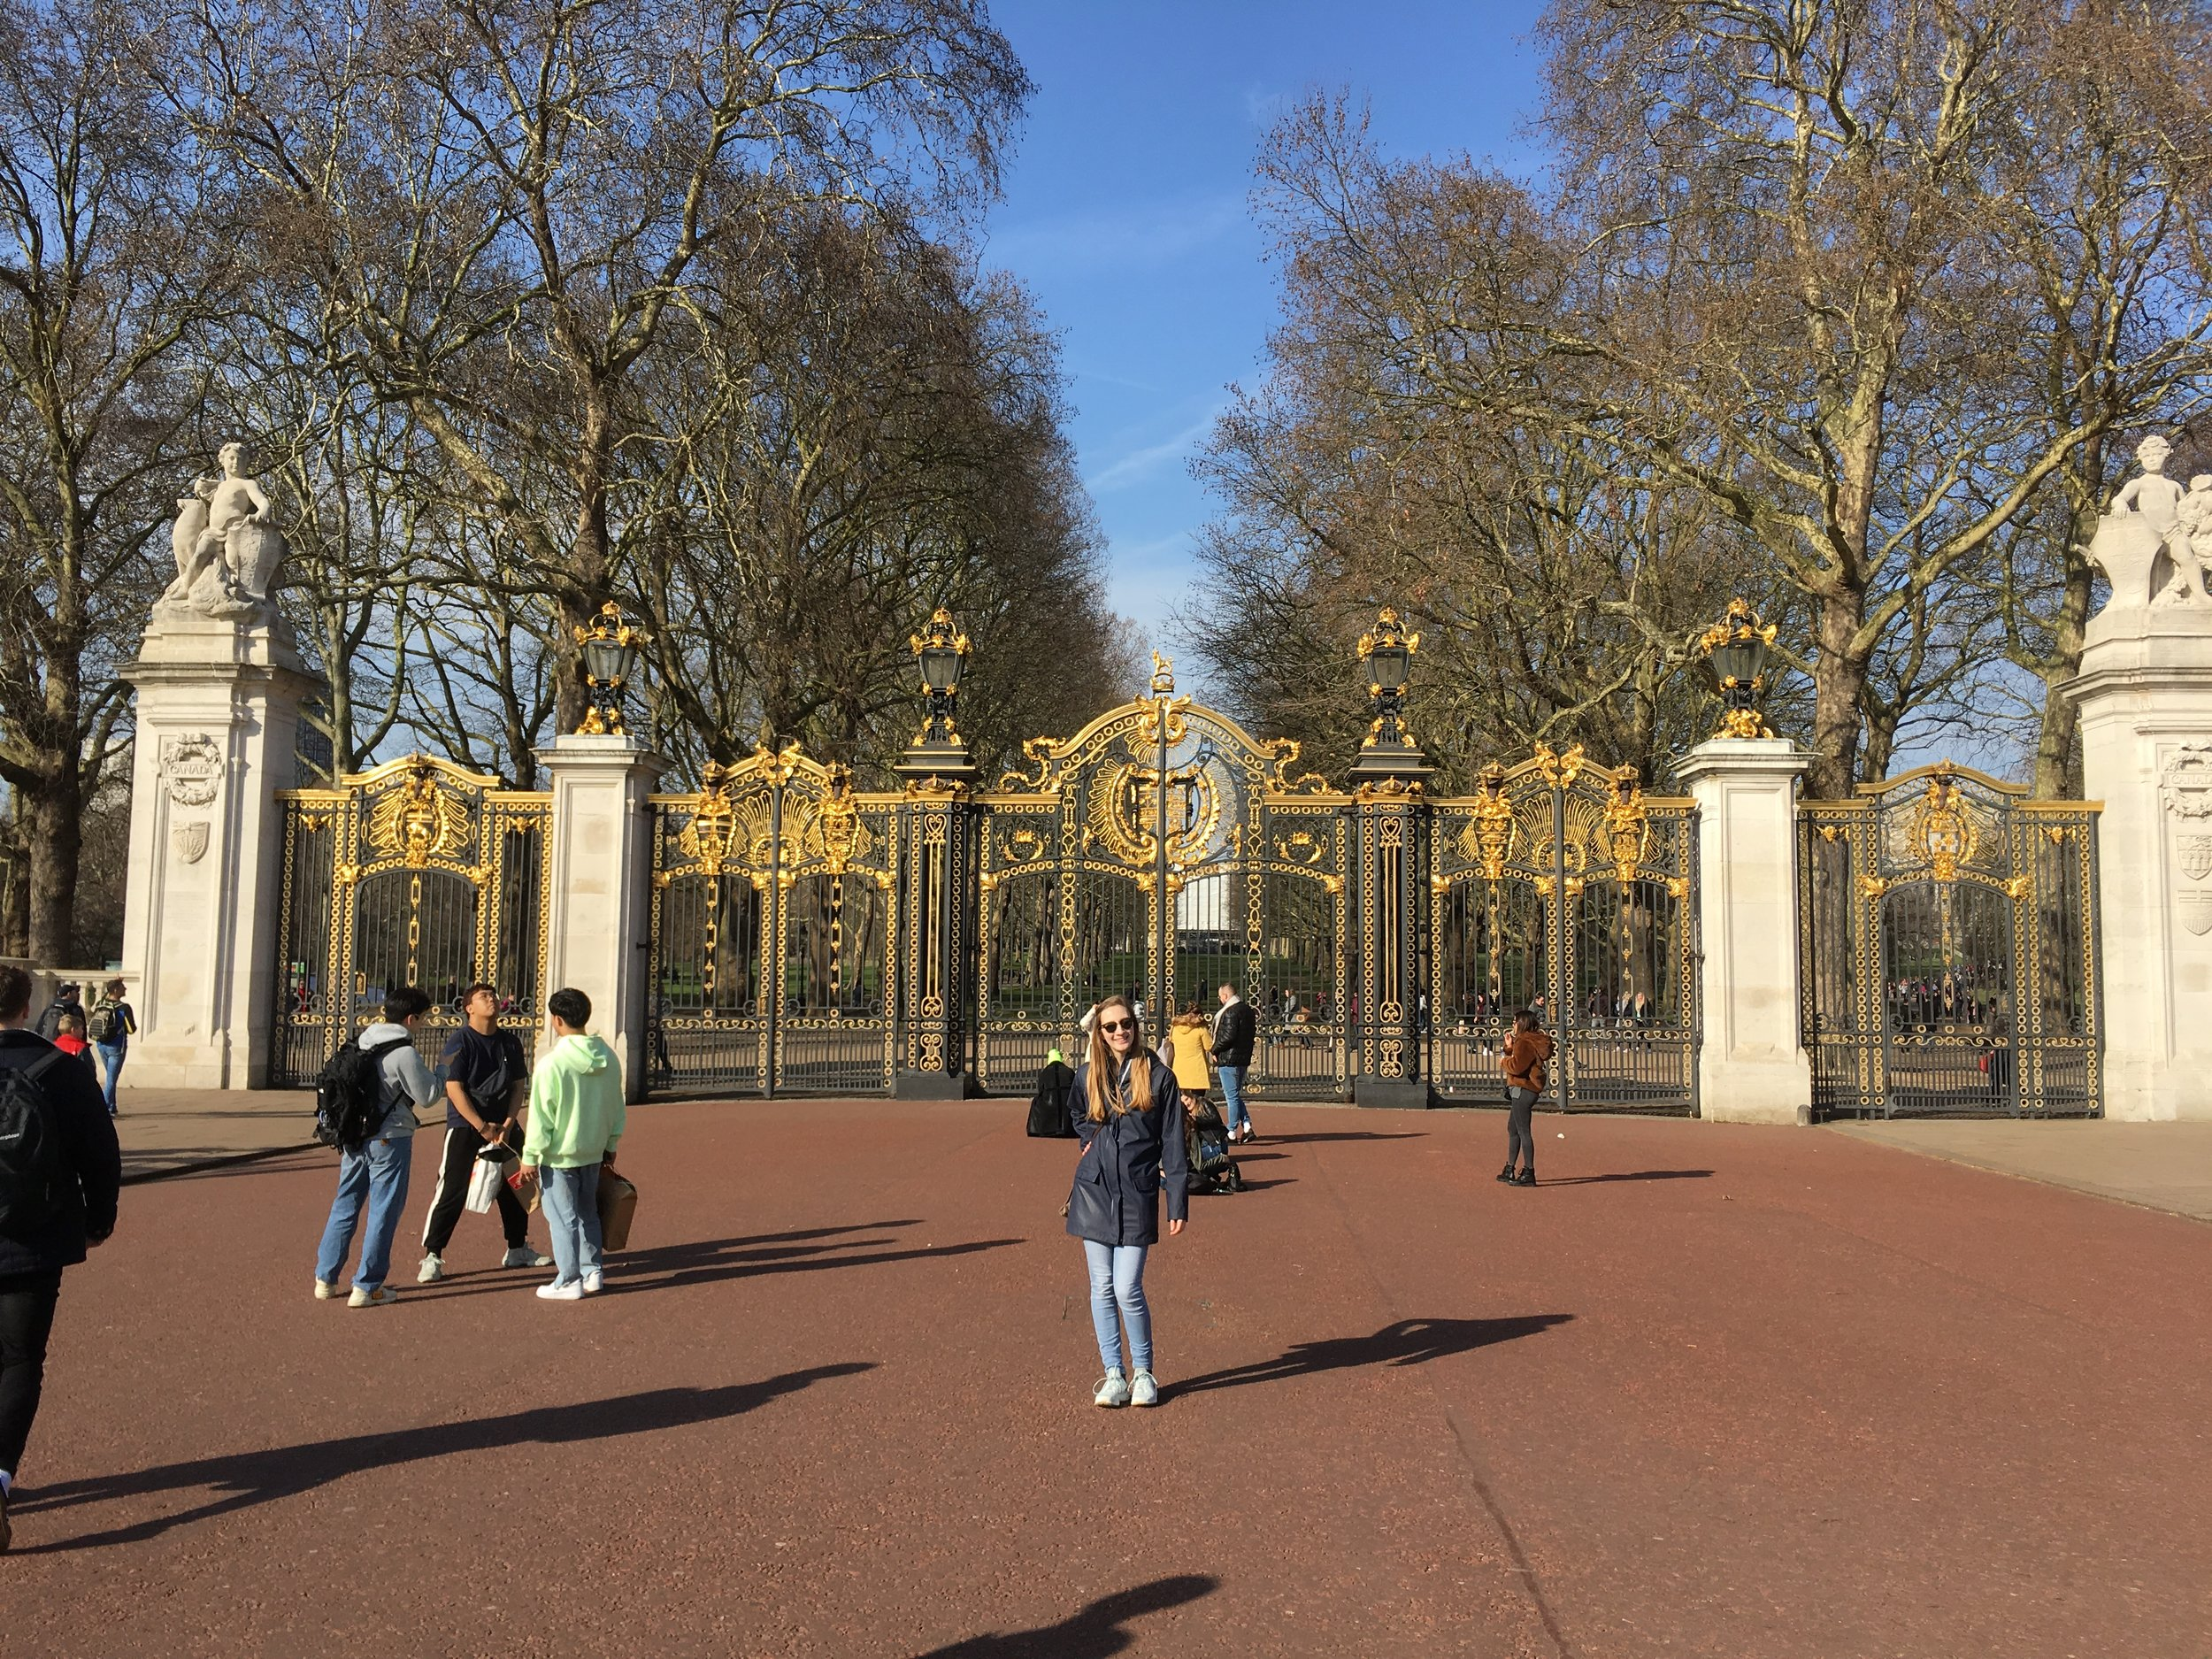 Kathleen in front of the Canada Gates